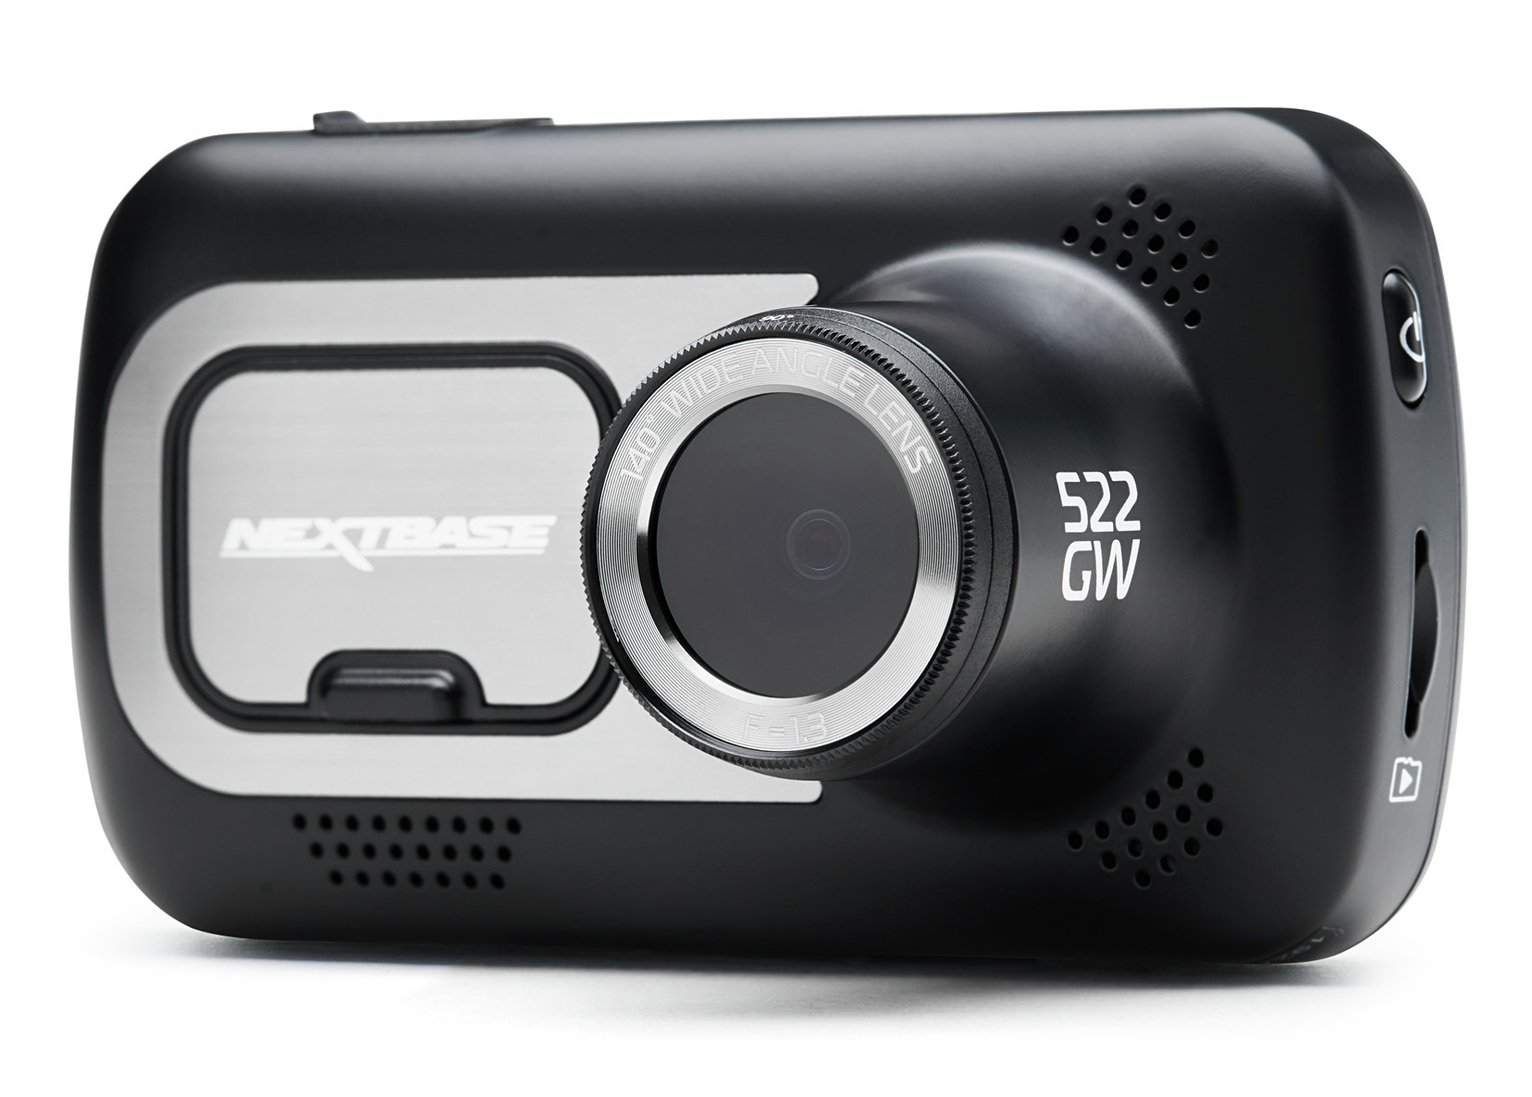 Nextbase 522GW Dash Cam with Alexa Enabled